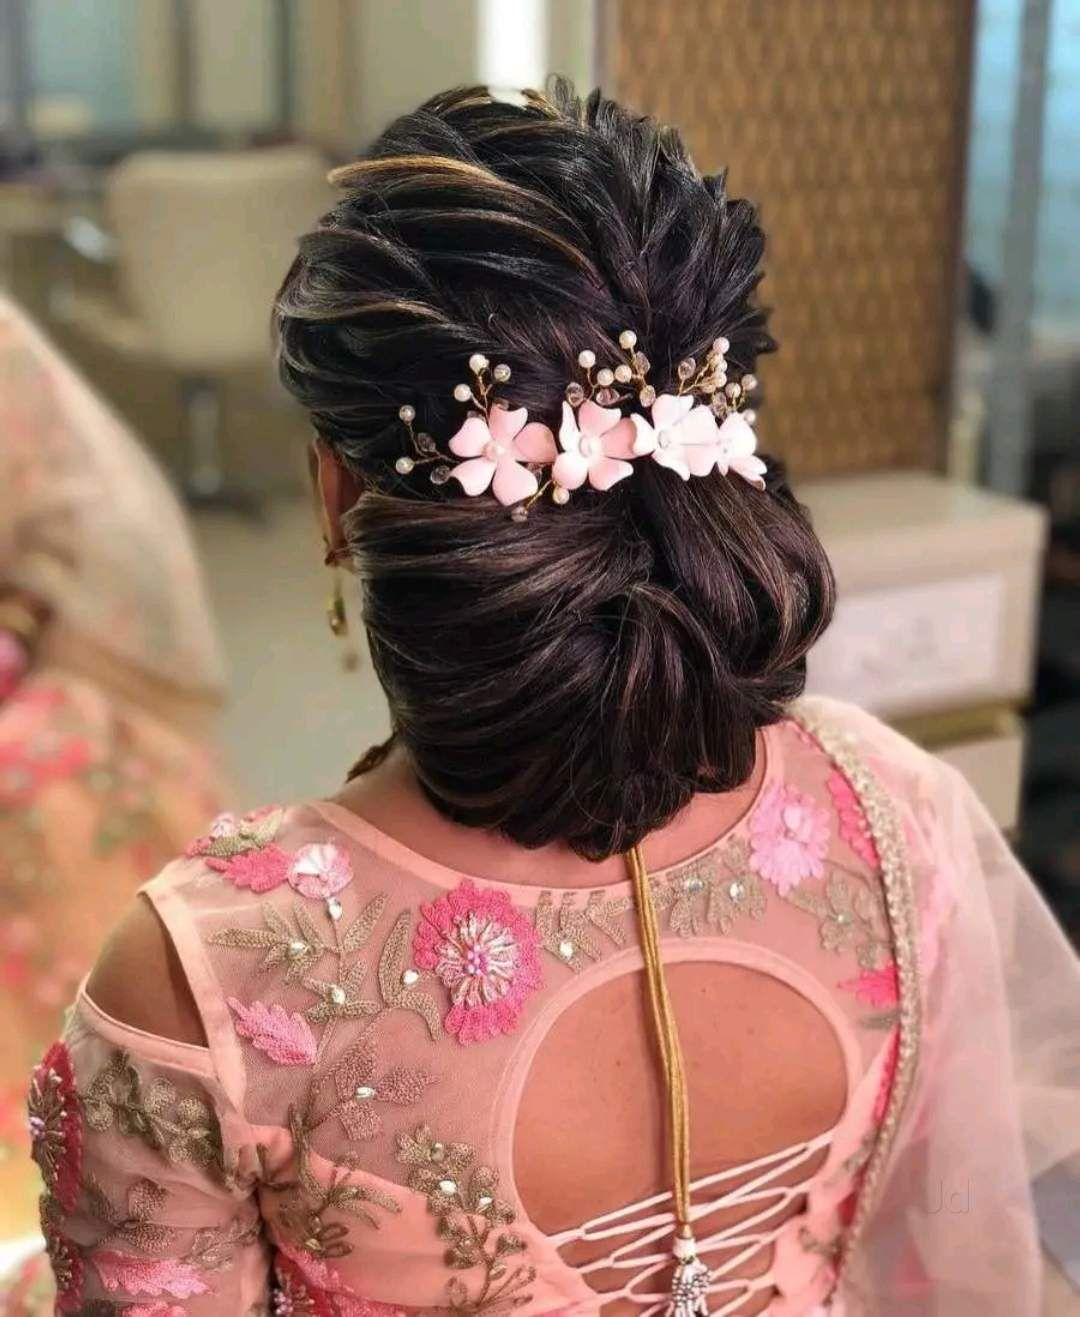 Bridal Hairstyle Ideas For Every Indian Bride. Most Trending Hairstyles for  the Indian Bride i… in 2020 | Wedding hair inspiration, Hair styles, Indian  hairstyles